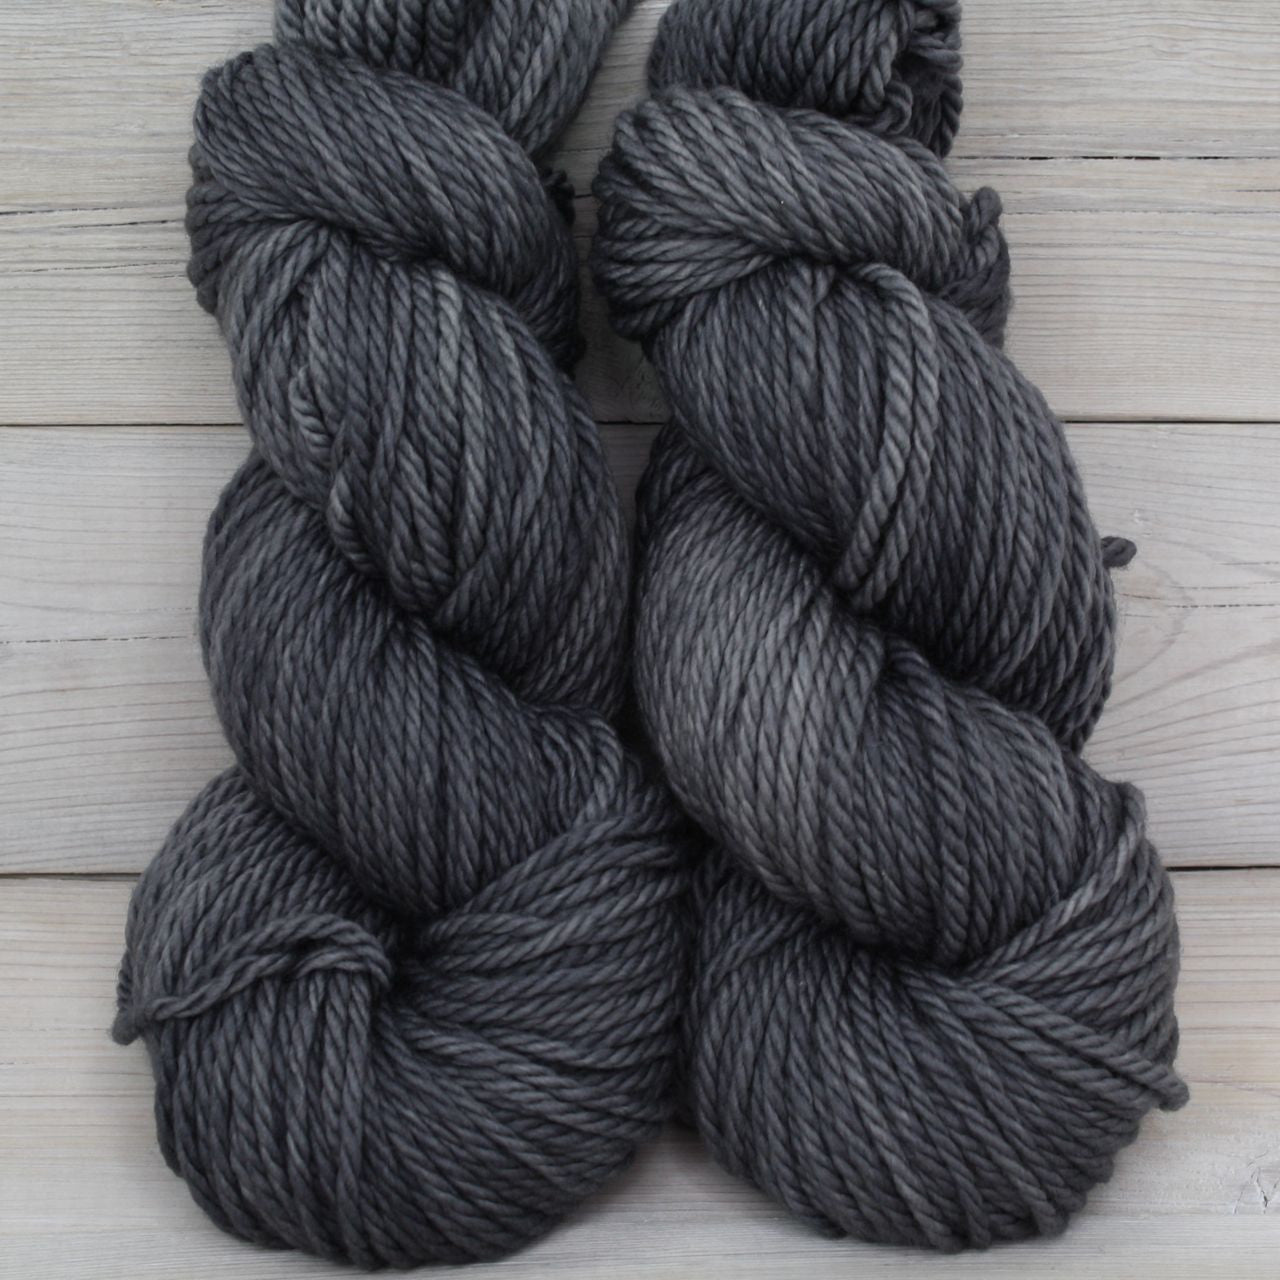 Apollo Yarn | Colorway: Charcoal